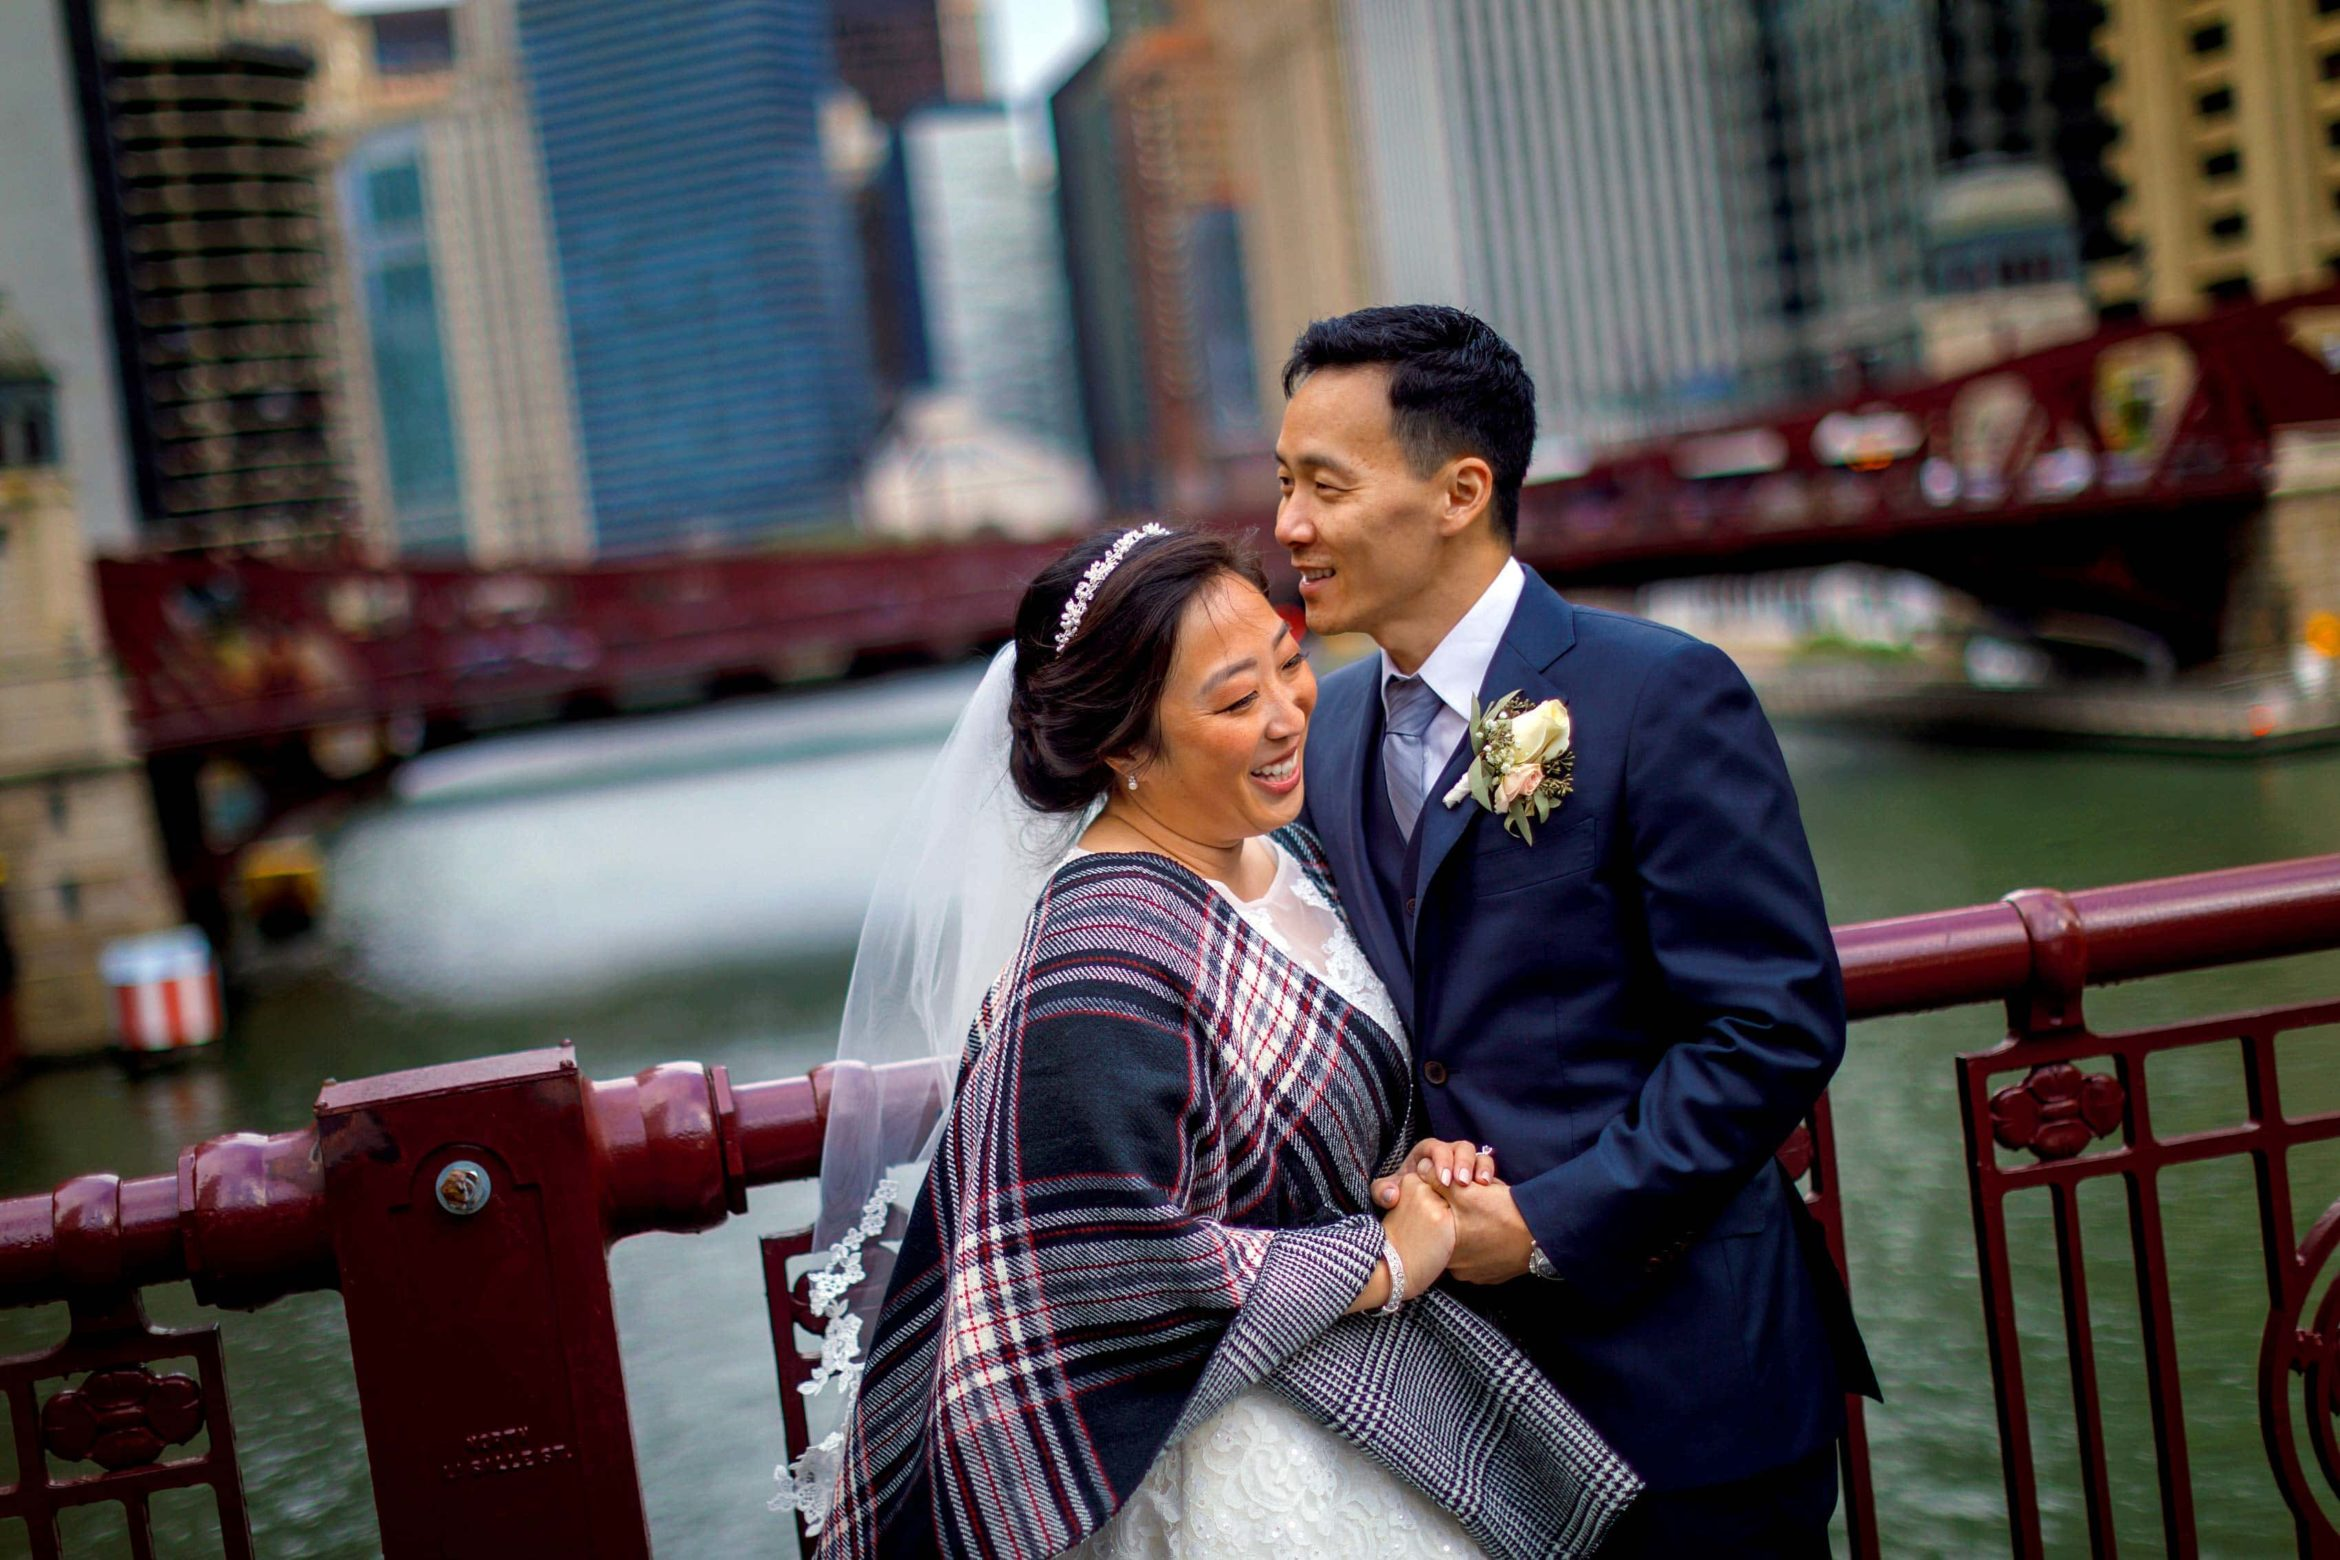 bride-and-groom-laugh-during-portraits-on-LaSalle-Street-Bridge-in-Chicago-following-their-wedding-26